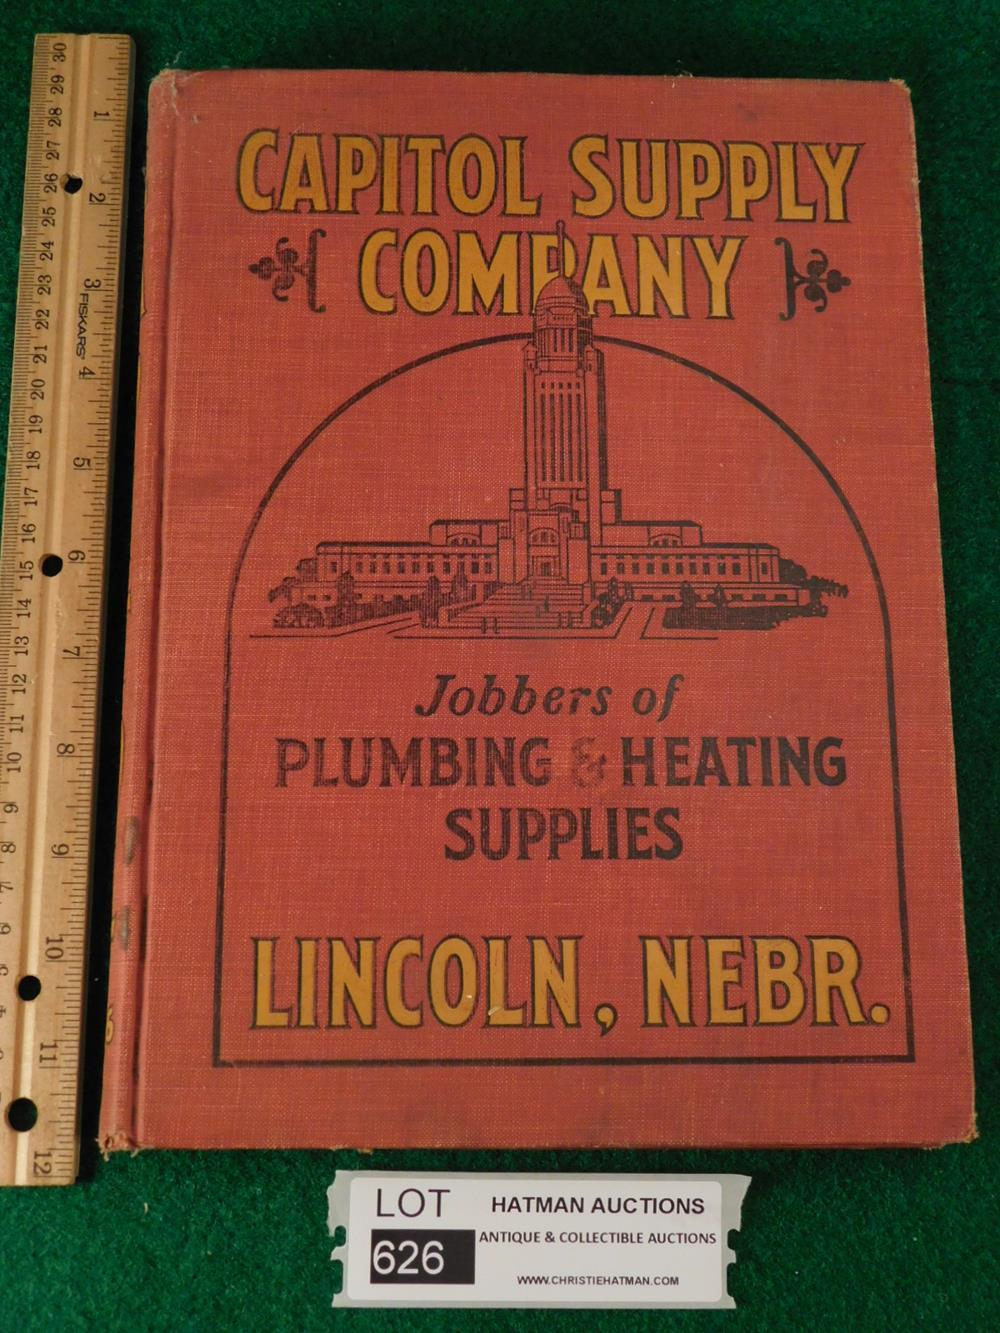 VINTAGE HARDBACK SUPPLY CATALOG CAPITOL SUPPLY COMPANY JOBBERS OF PLUMBING AND HEATING SUPPLIES BOOK ANTIQUES AND COLLECTIBLES